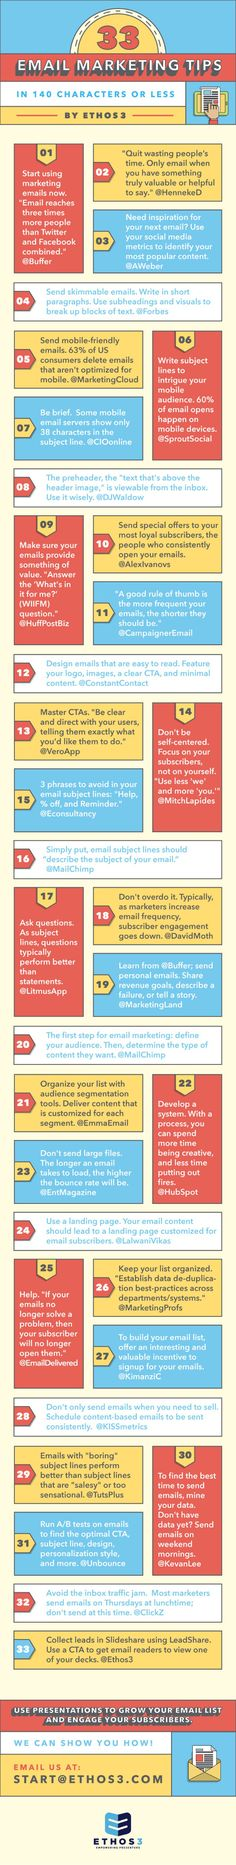 33 email marketing tips #infographic